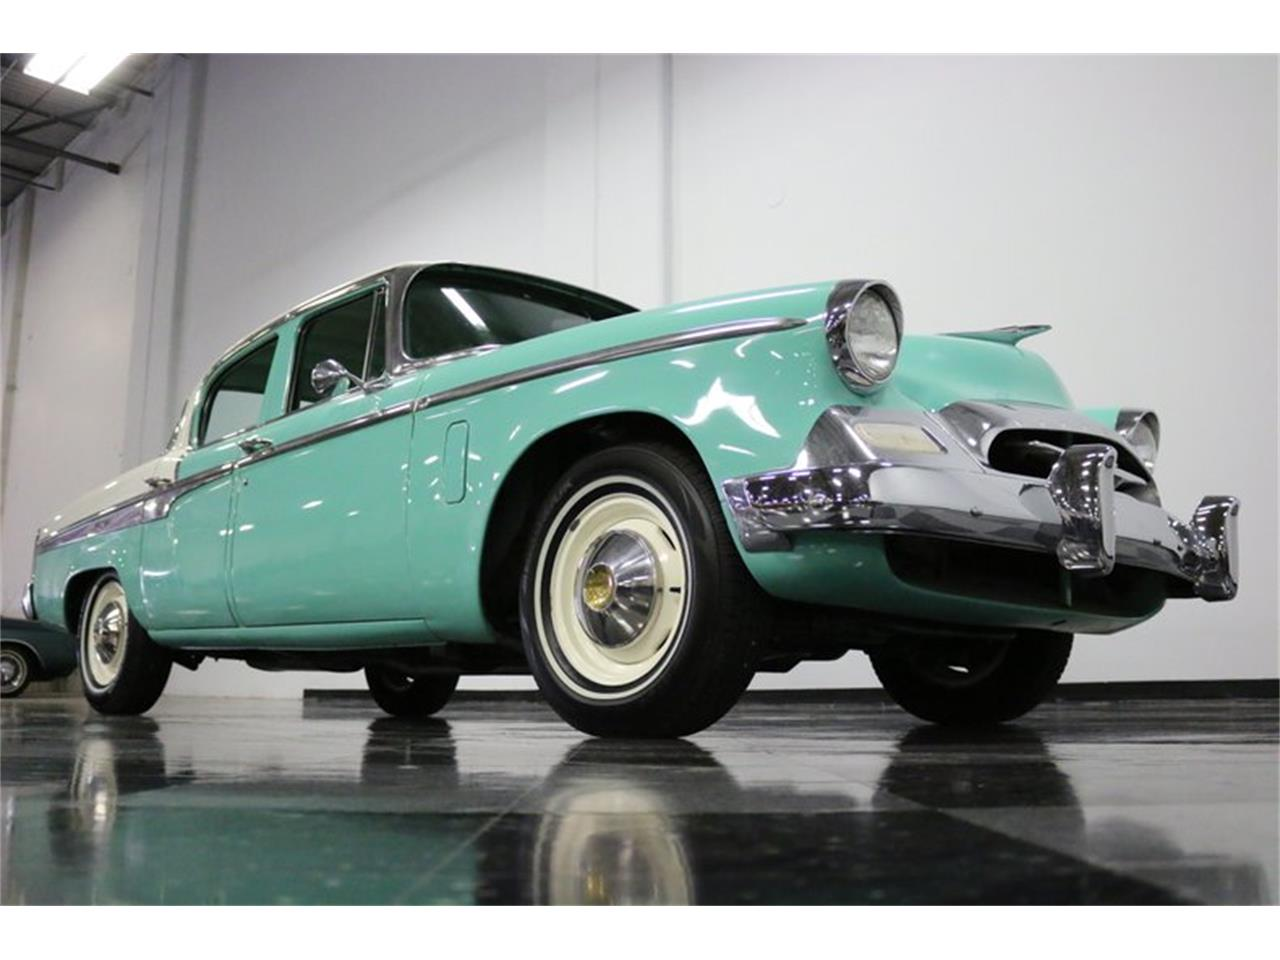 Large Picture of '55 Studebaker Champion located in Texas - $9,995.00 Offered by Streetside Classics - Dallas / Fort Worth - NTGN